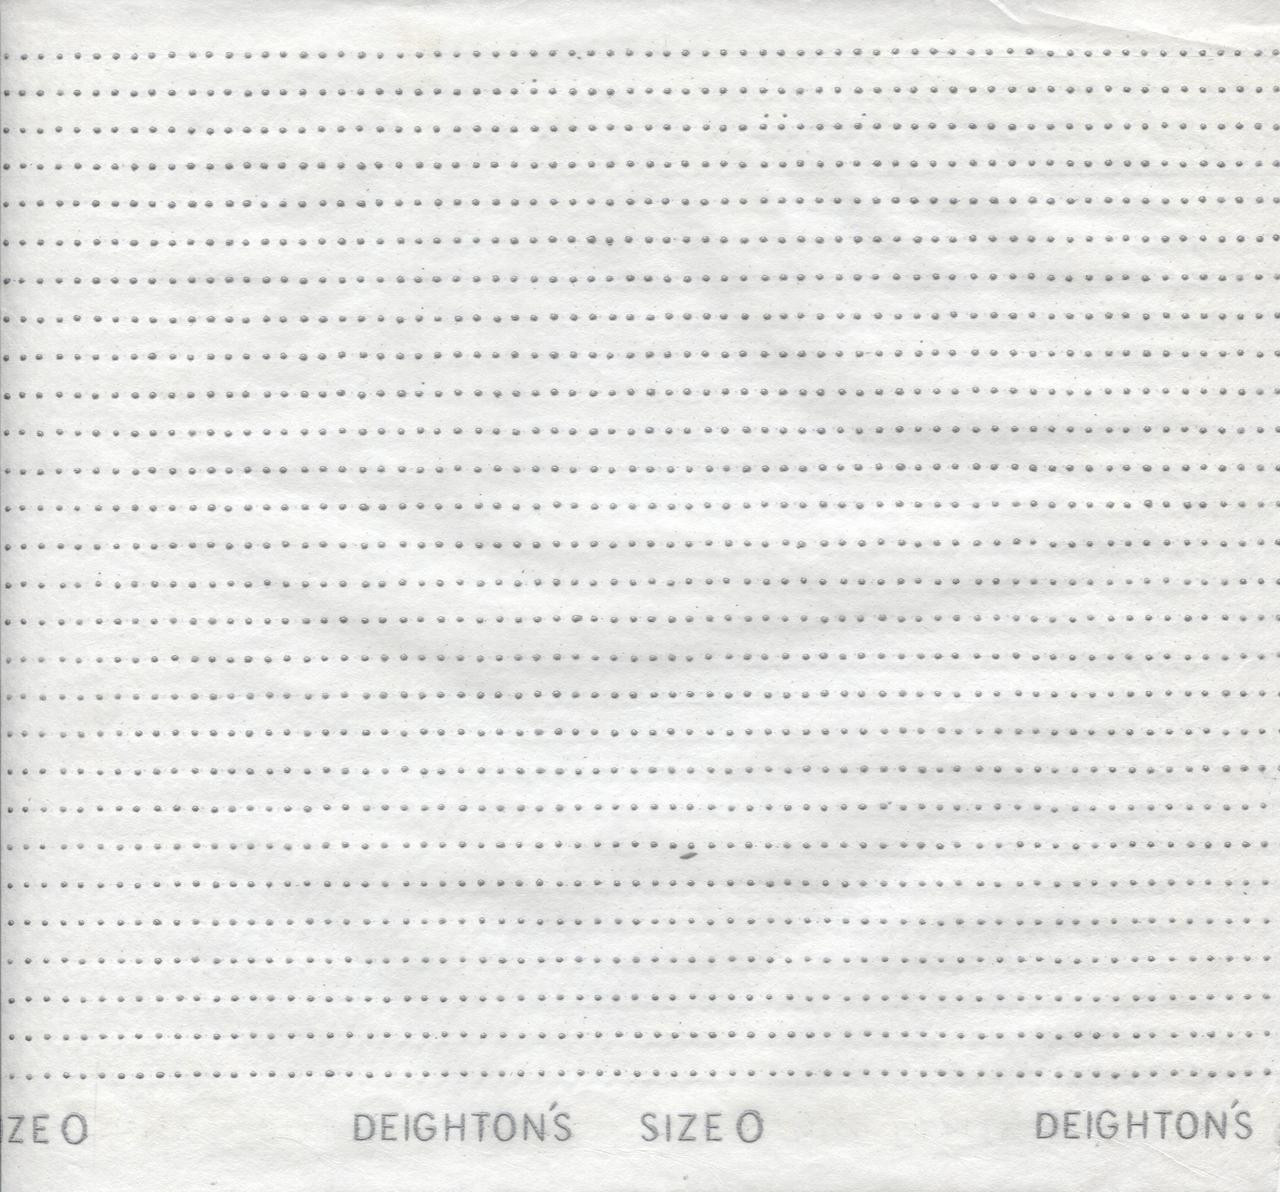 Smocking Transfer Dots - Size 'O' 3 mm x 6.5 mm - see video on how to use - one sheet in each pack